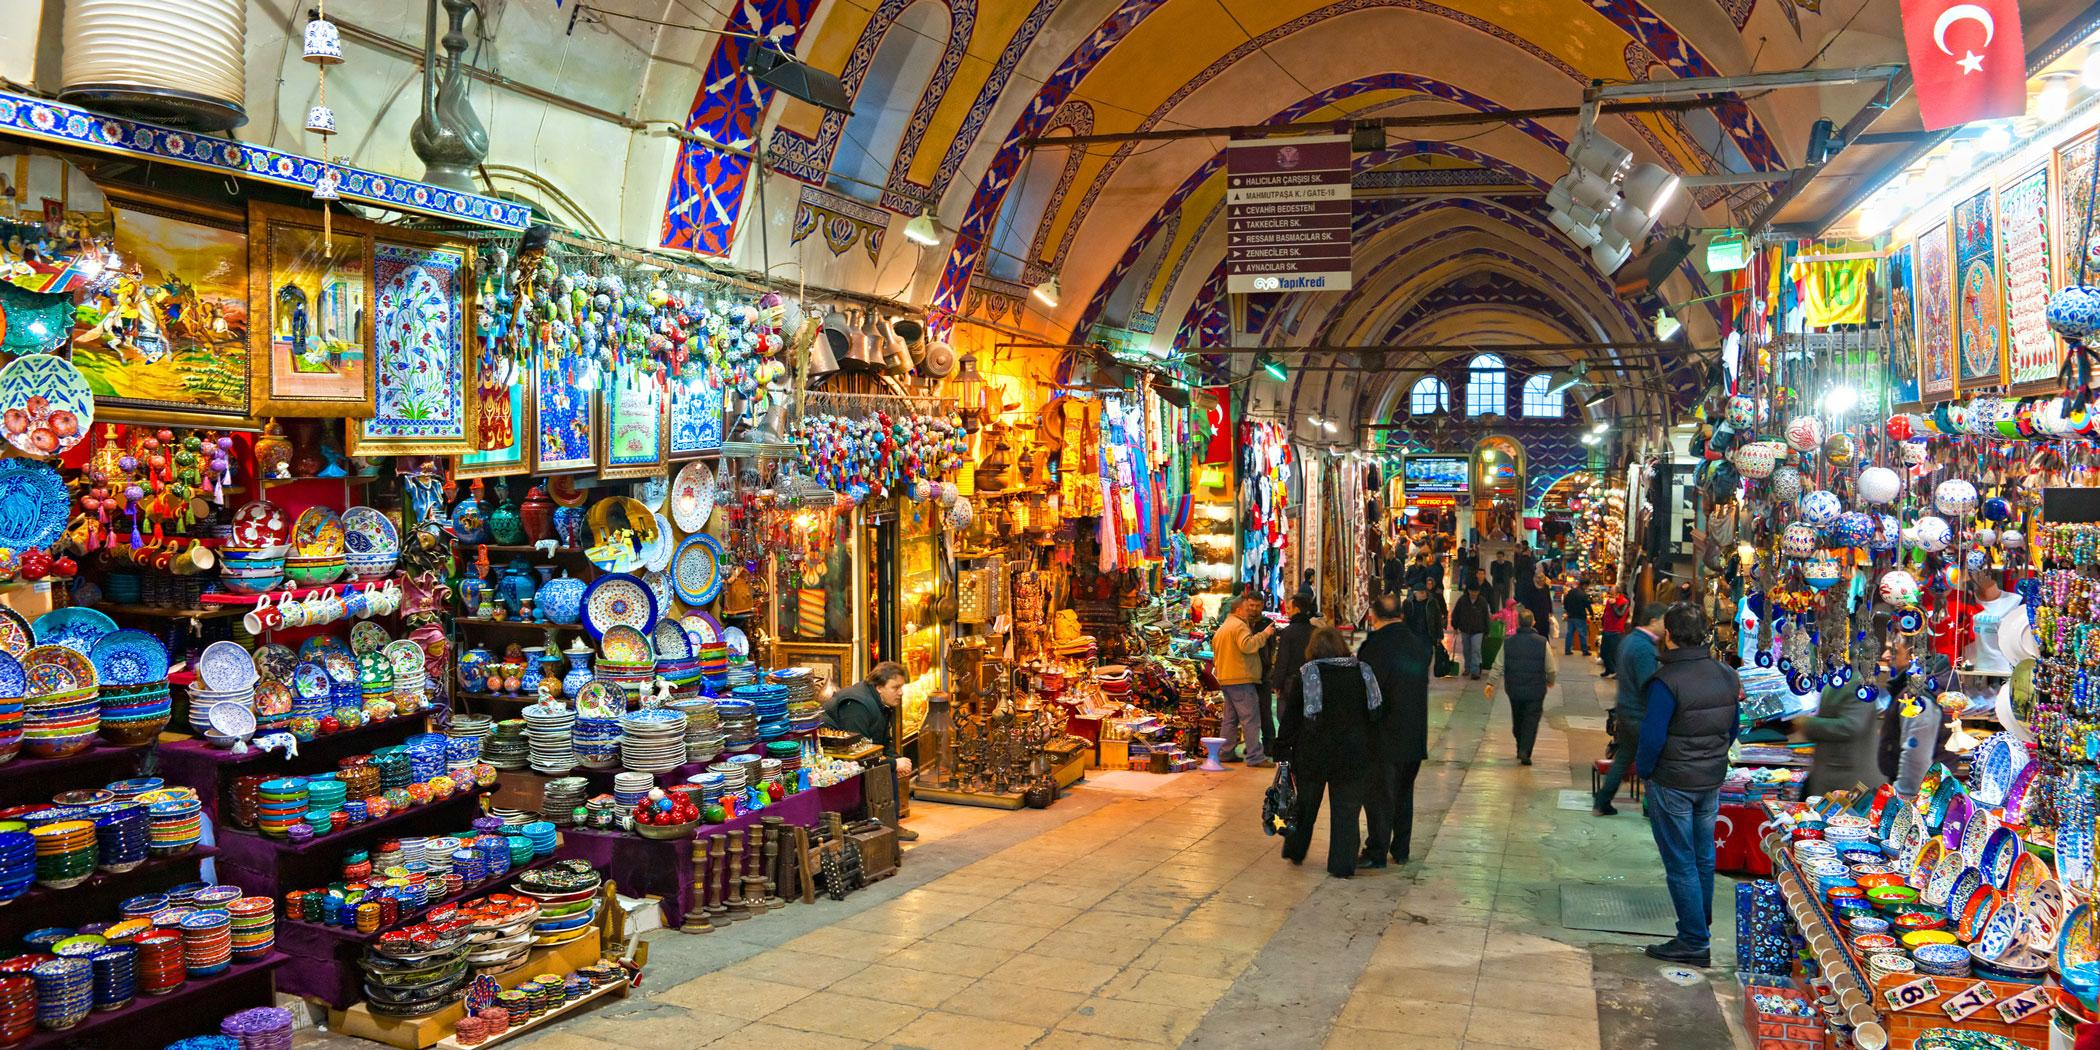 Grand bazaar shops in Istanbul. Photo Adobe Stock